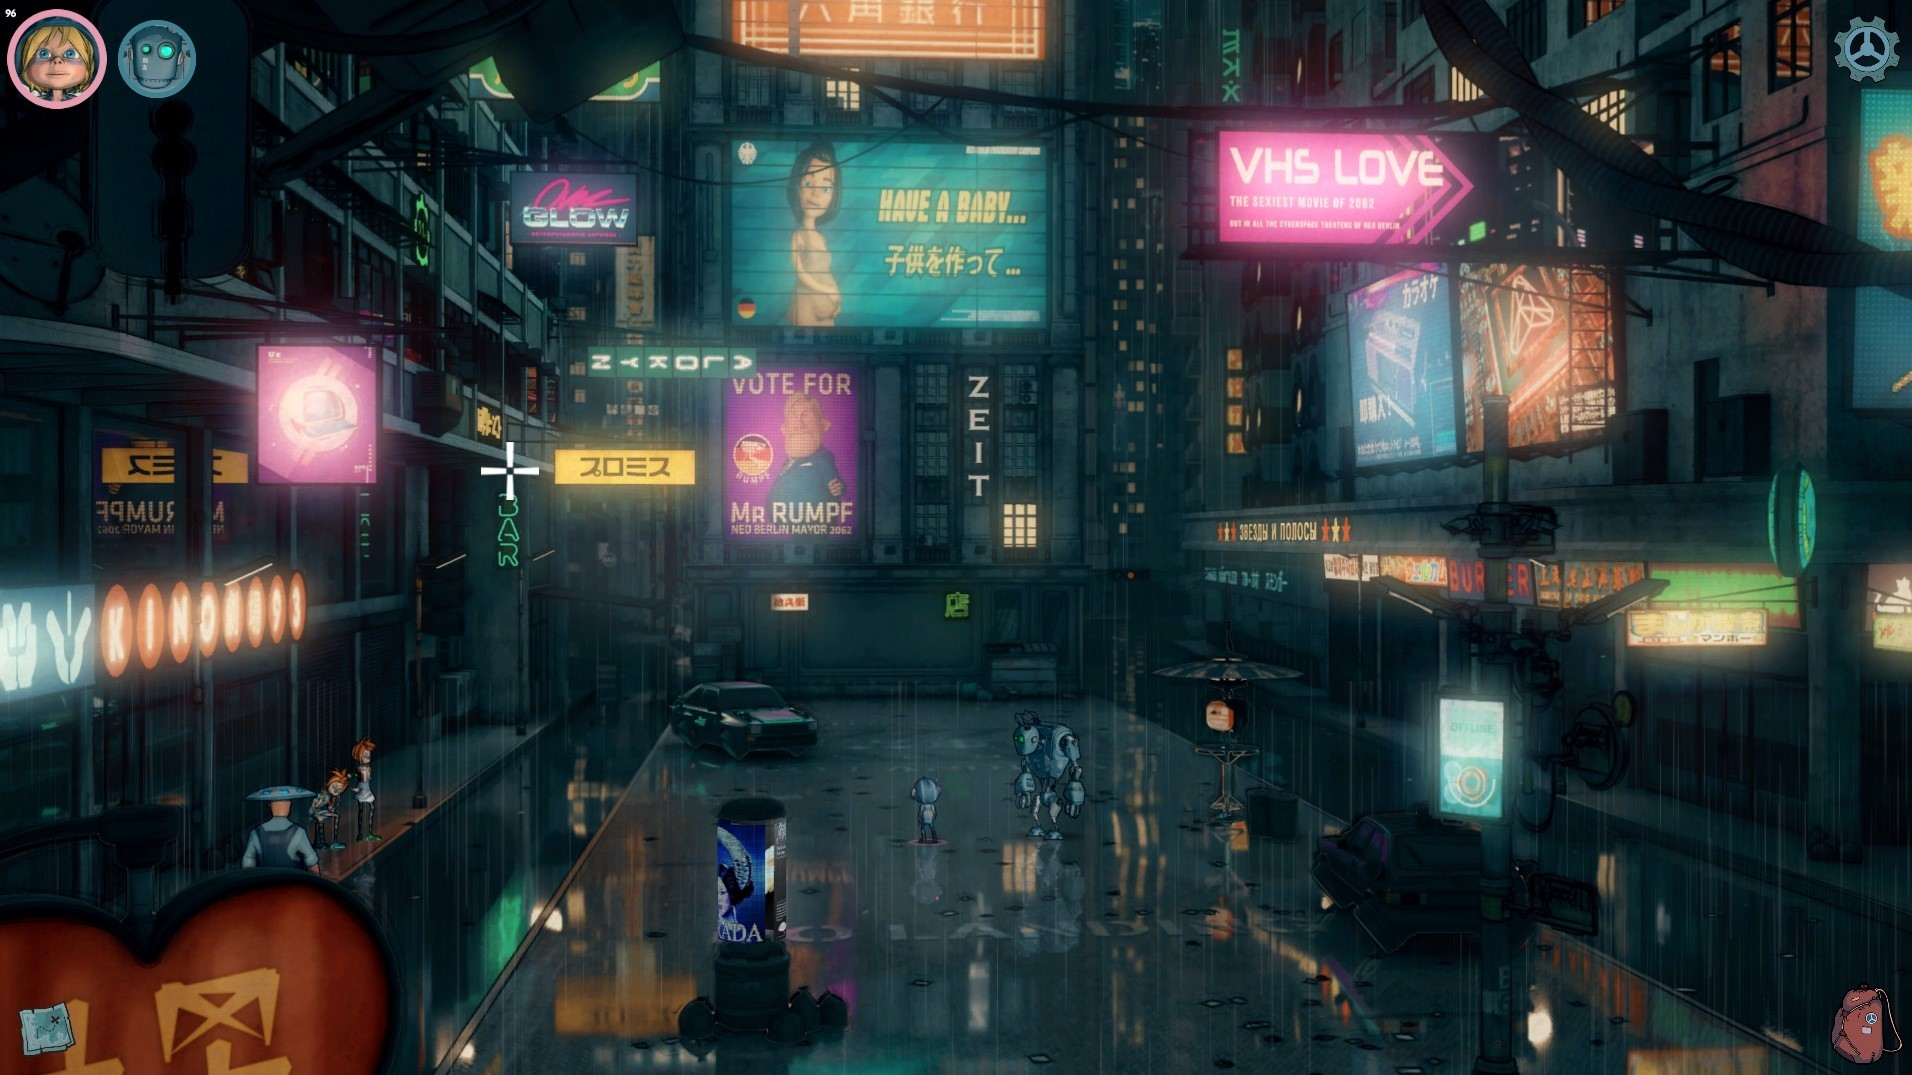 New Details Released For Upcoming Cyberpunk Point-and-Click Adventure Game Encodya